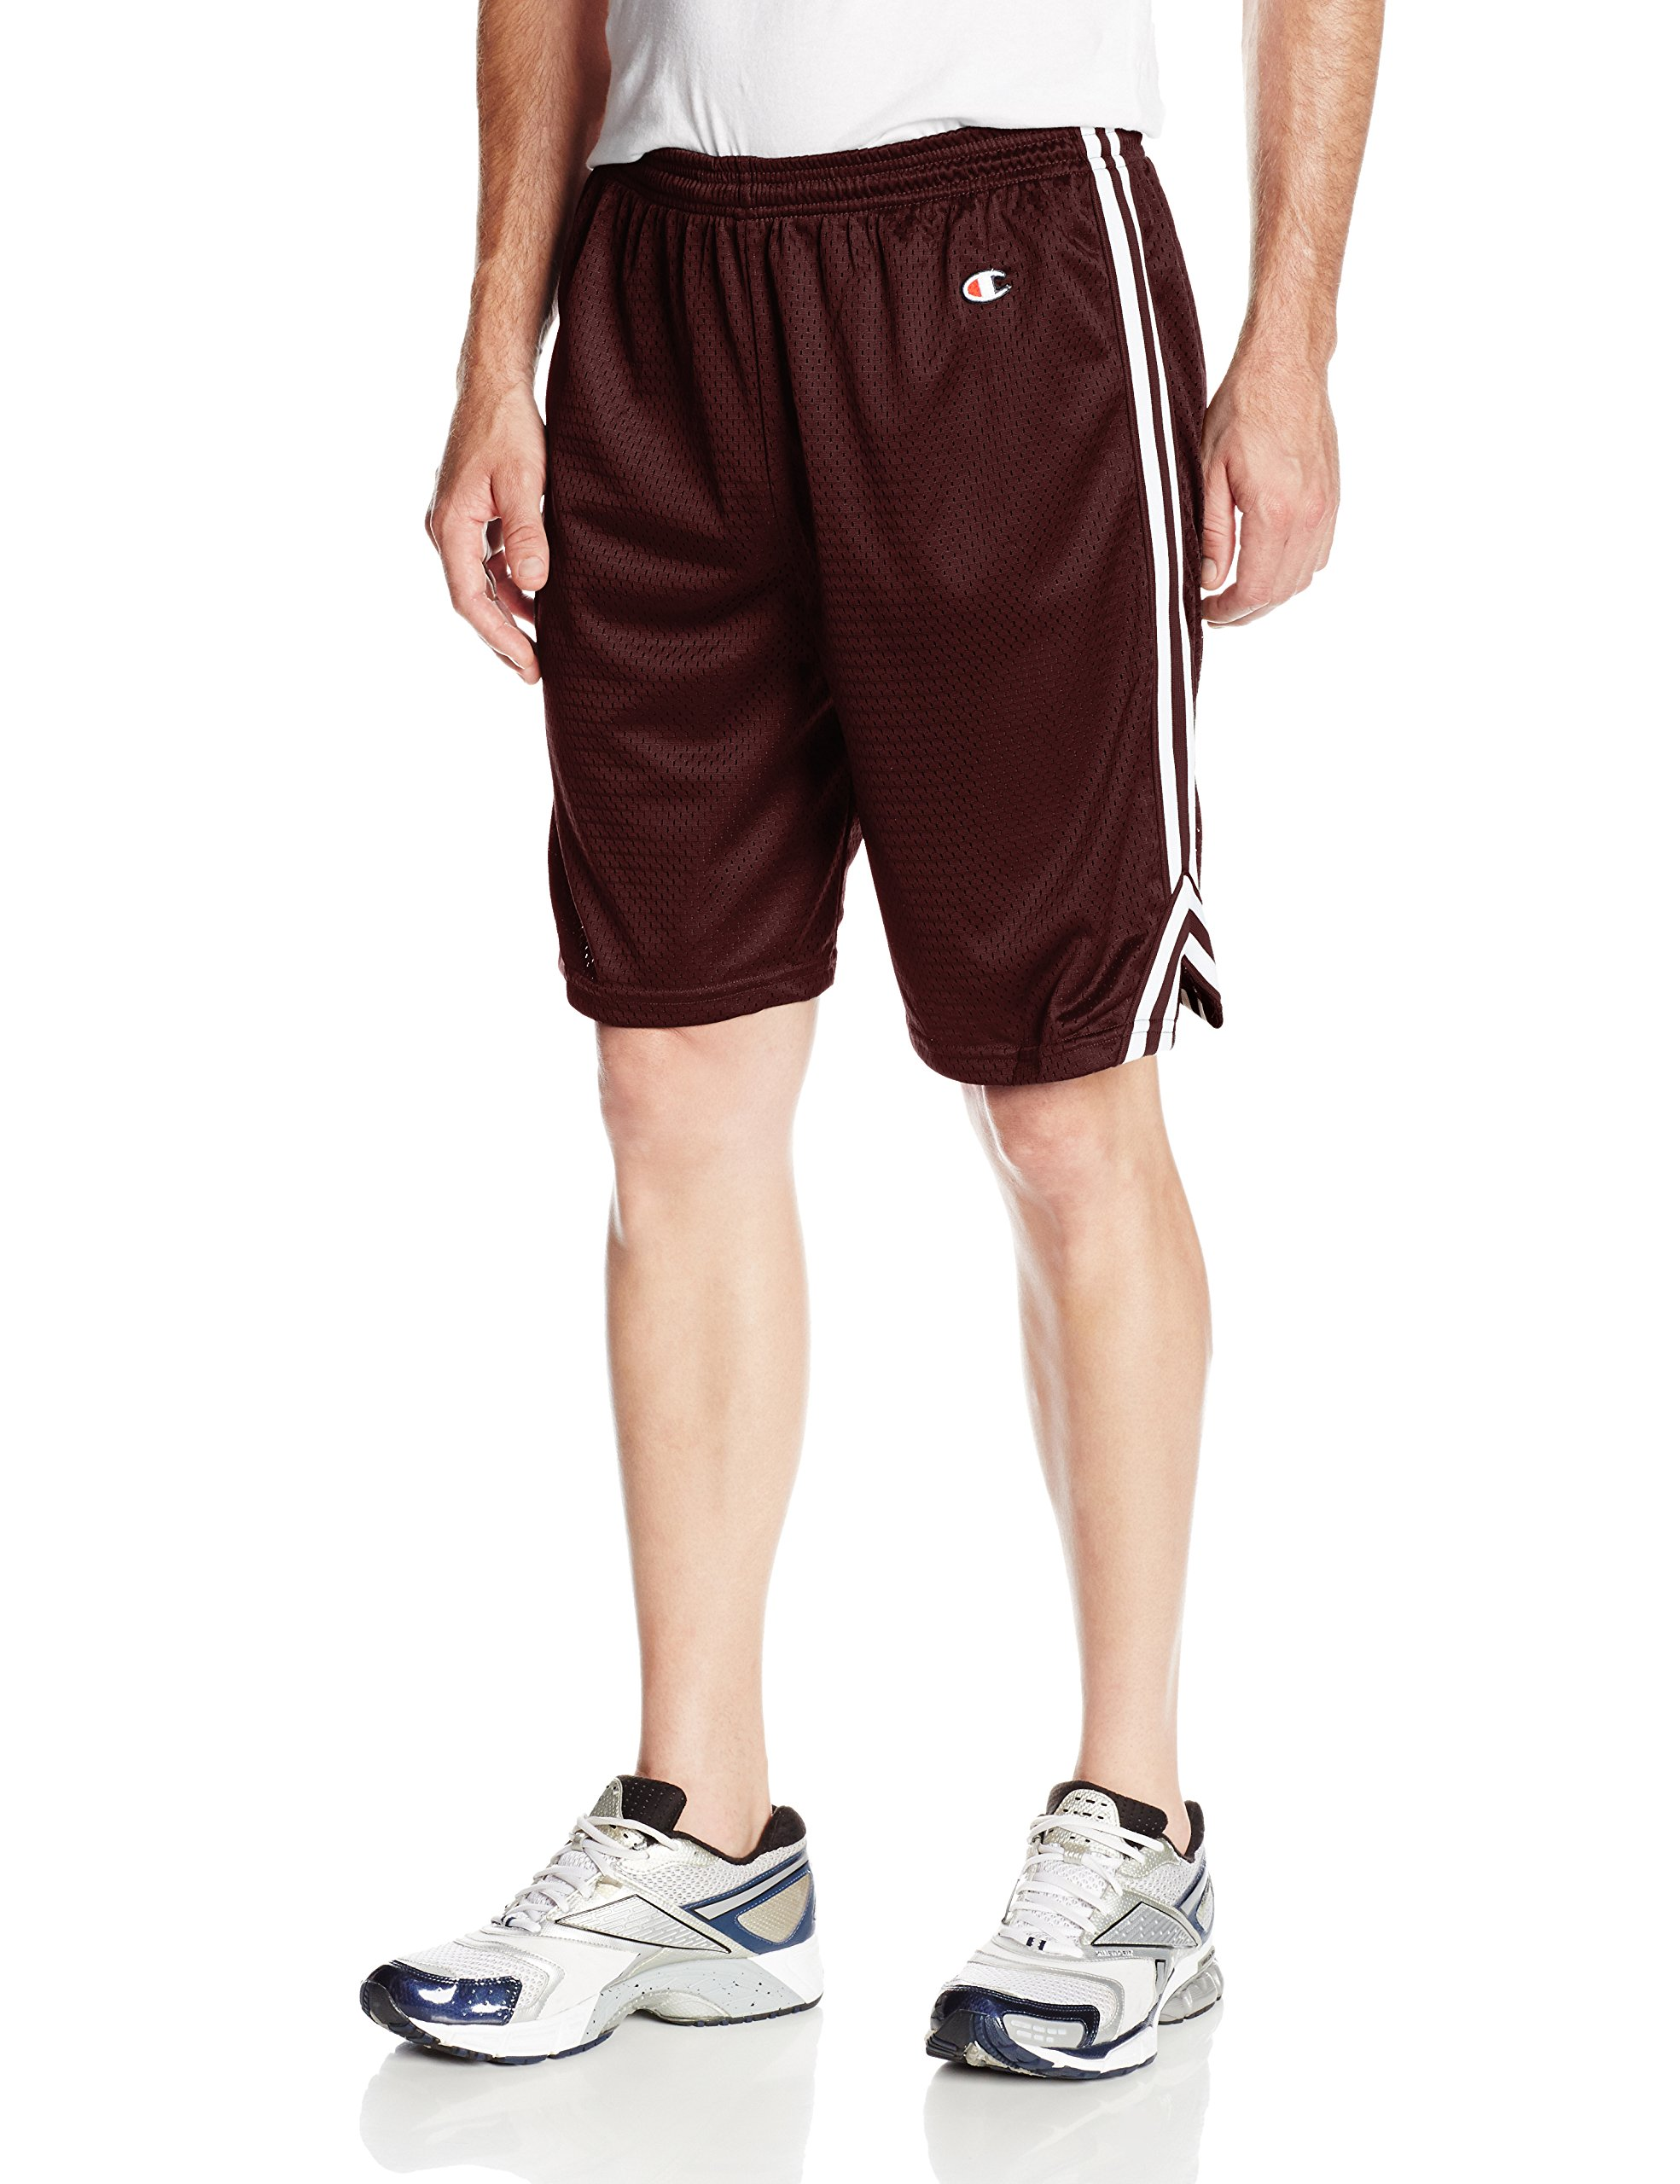 Champion Men's Double Dry Lacrosse Shorts, Maroon/White, Small